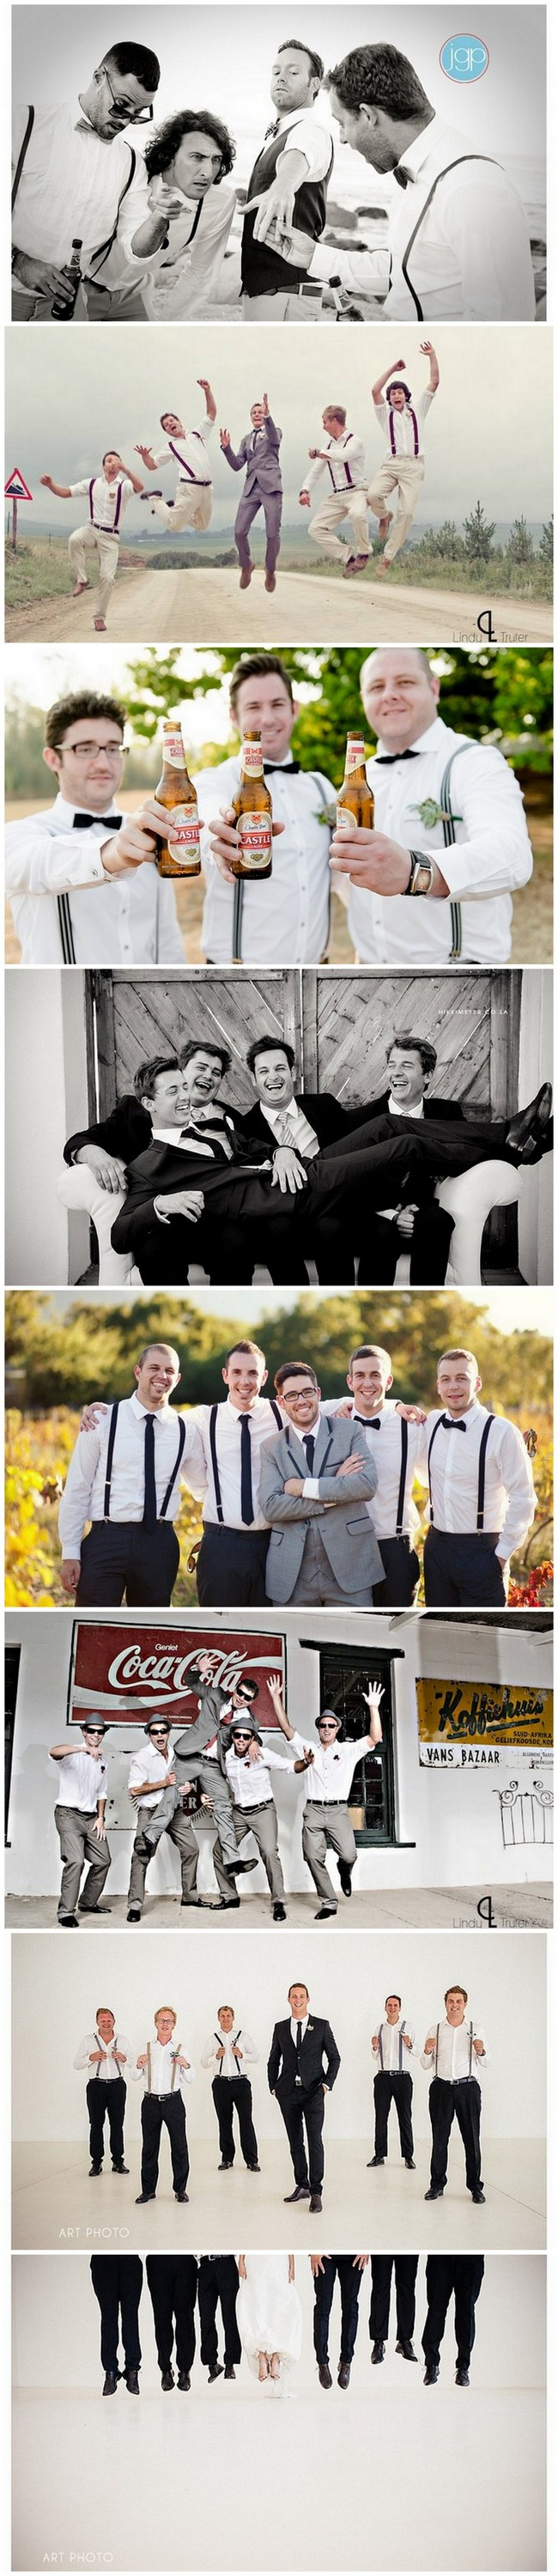 Groomsmen Wedding Photo Ideas and Poses https://www.confettidaydreams.com/wedding-photo-ideas-and-poses-for-your-wedding-party/